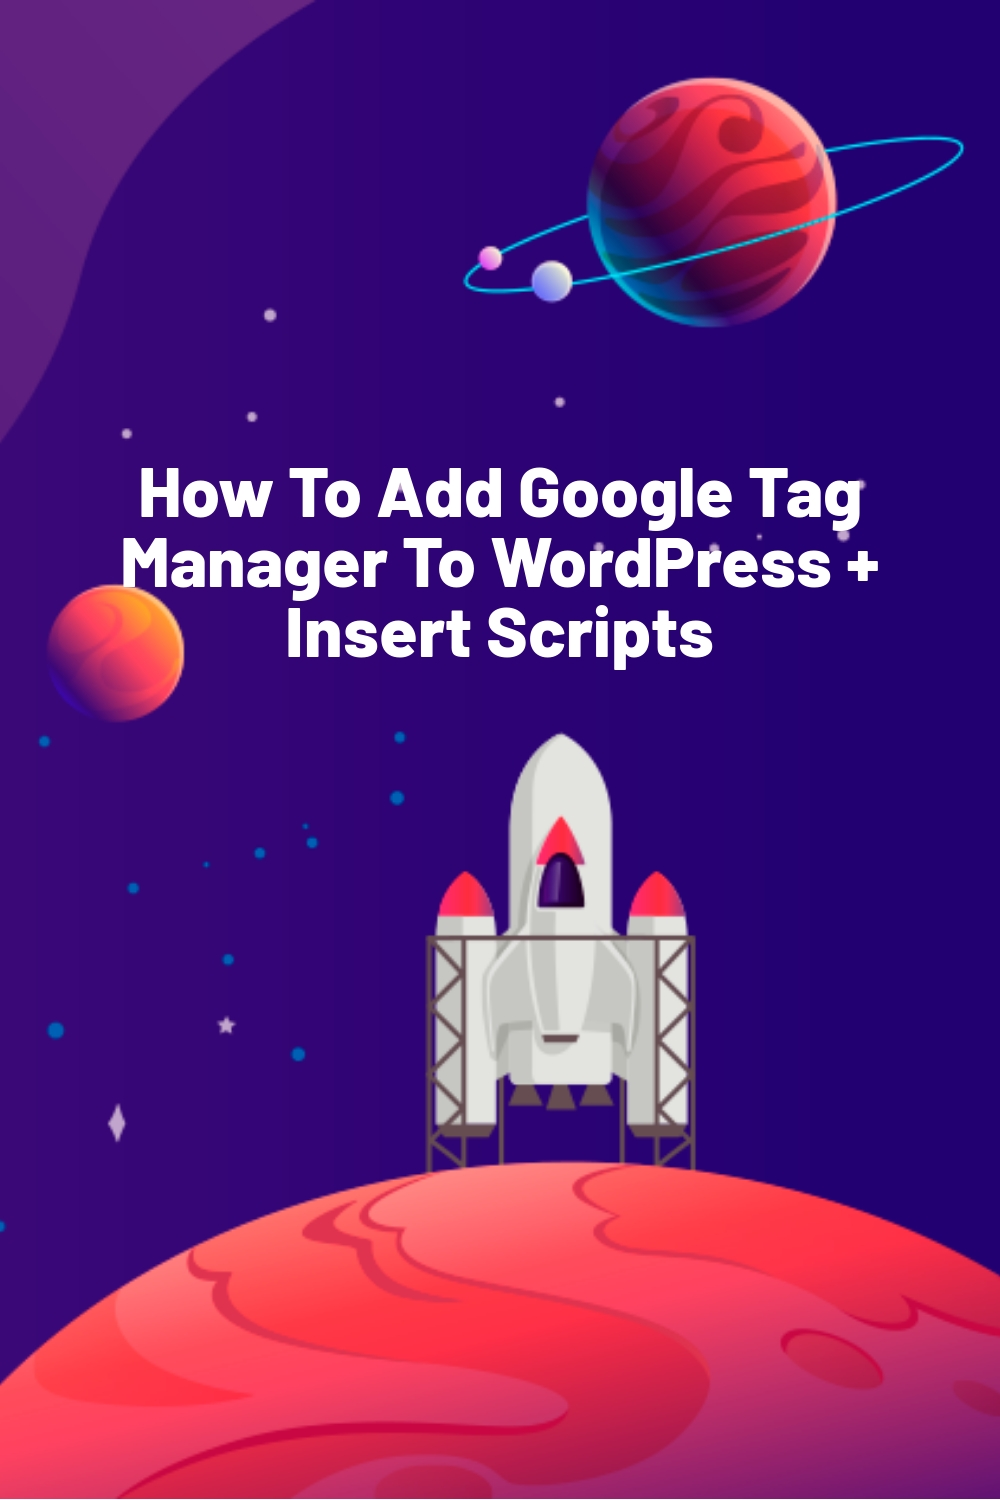 How To Add Google Tag Manager To WordPress + Insert Scripts